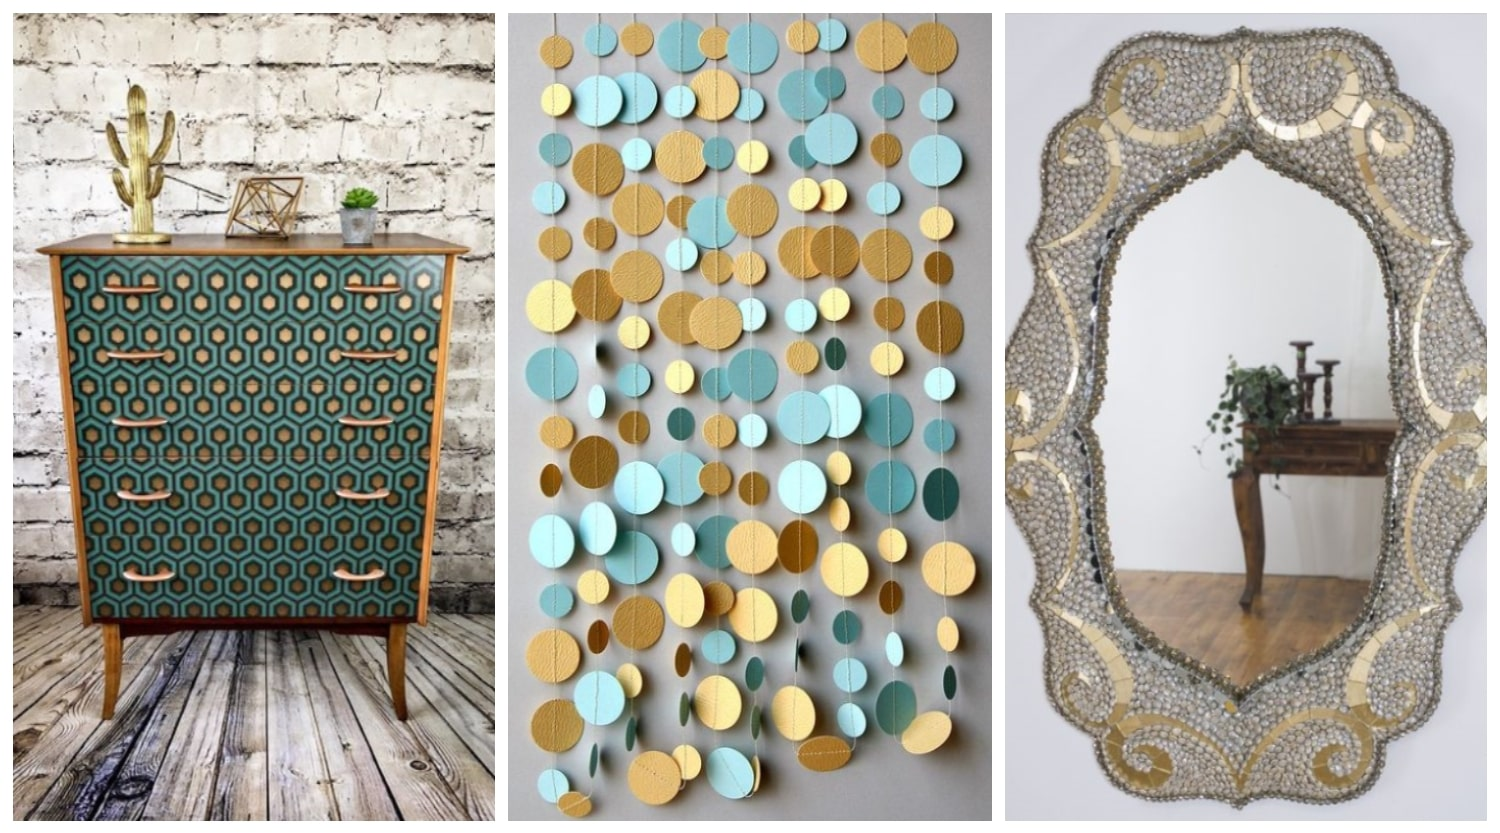 Top 5 Handmade Home Trends